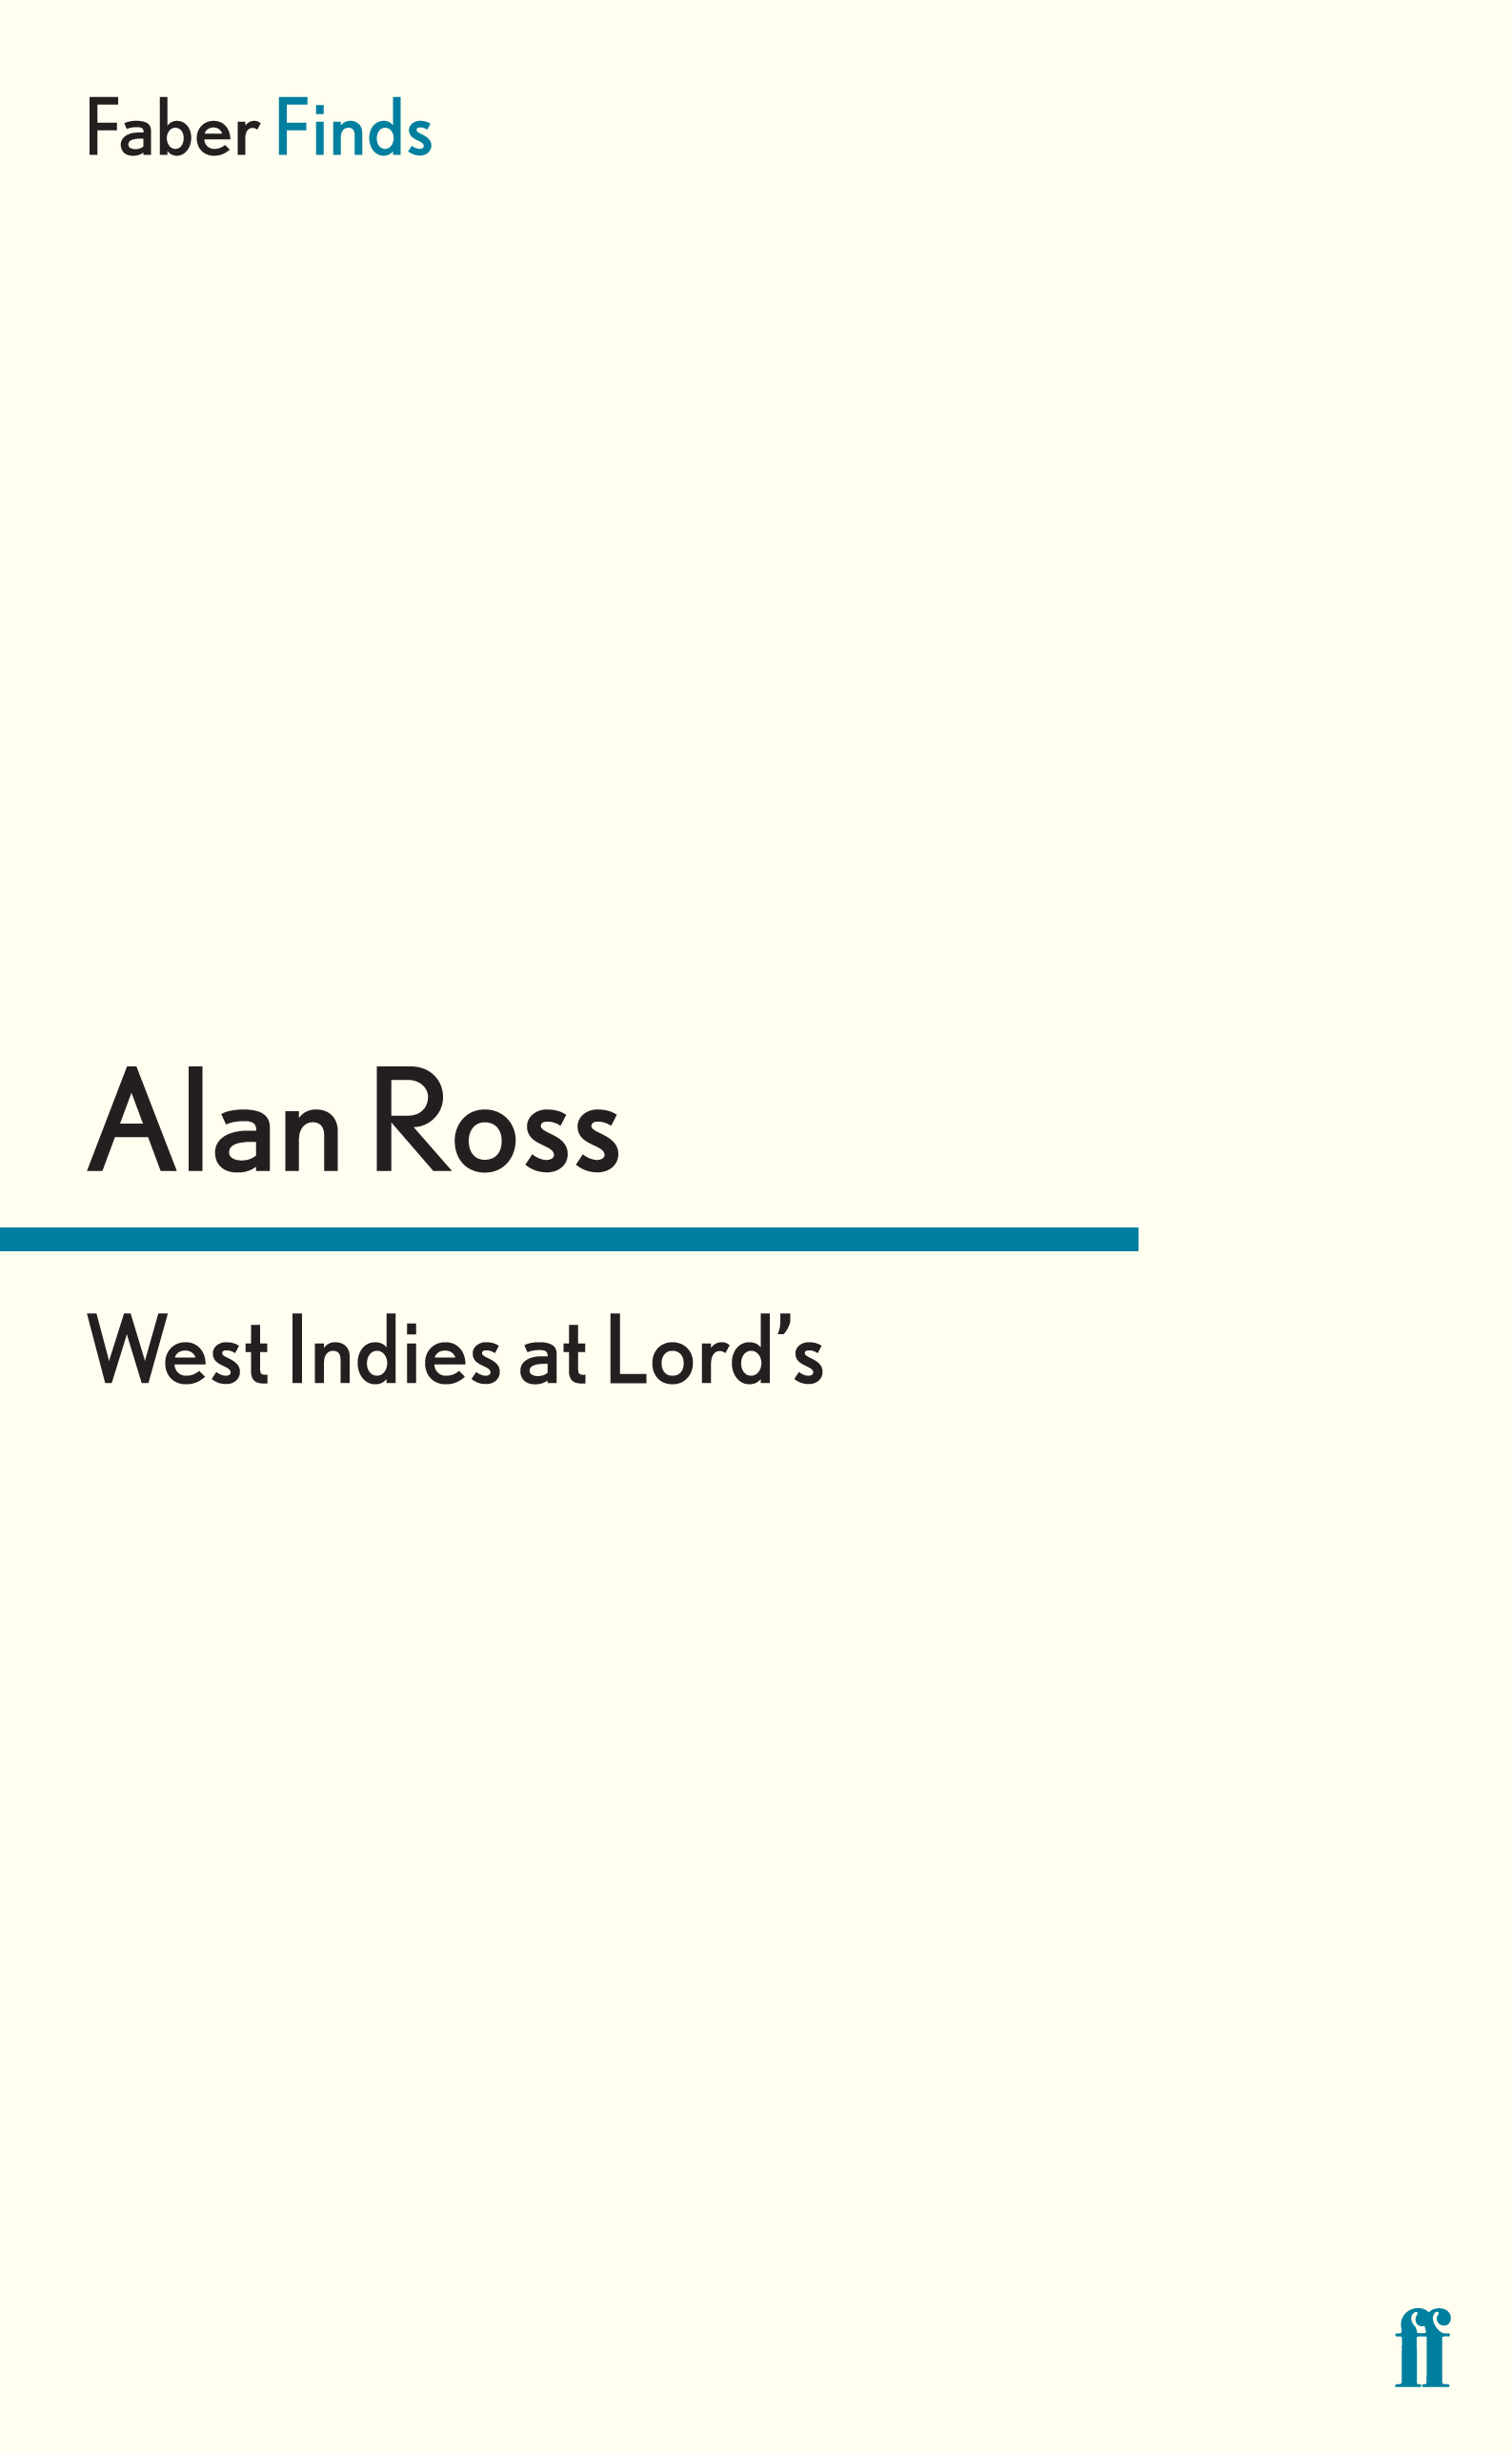 West Indies at Lord's By: Alan Ross